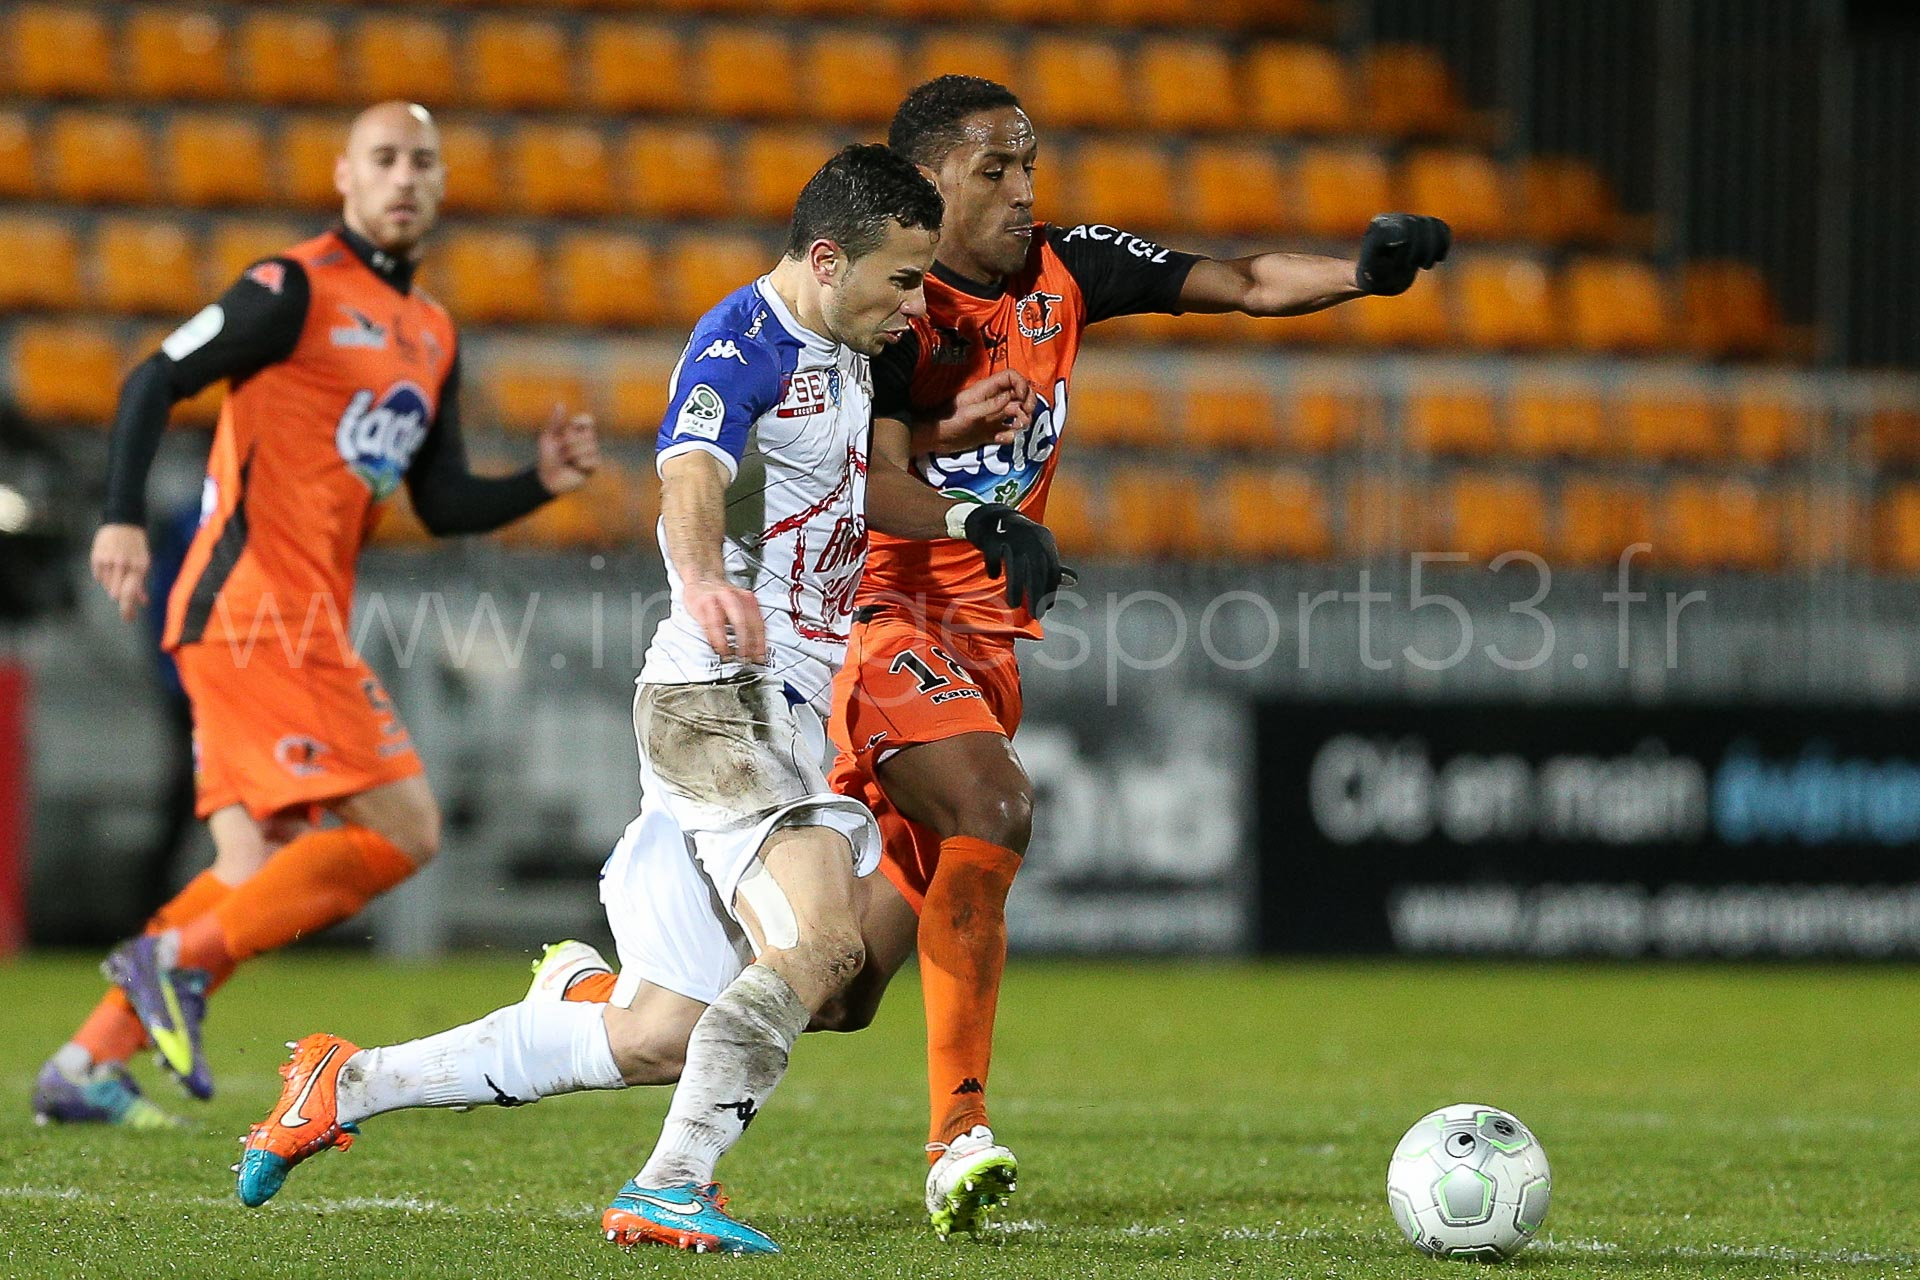 NG-Ligue2-1415-J22-Laval-Troyes_15